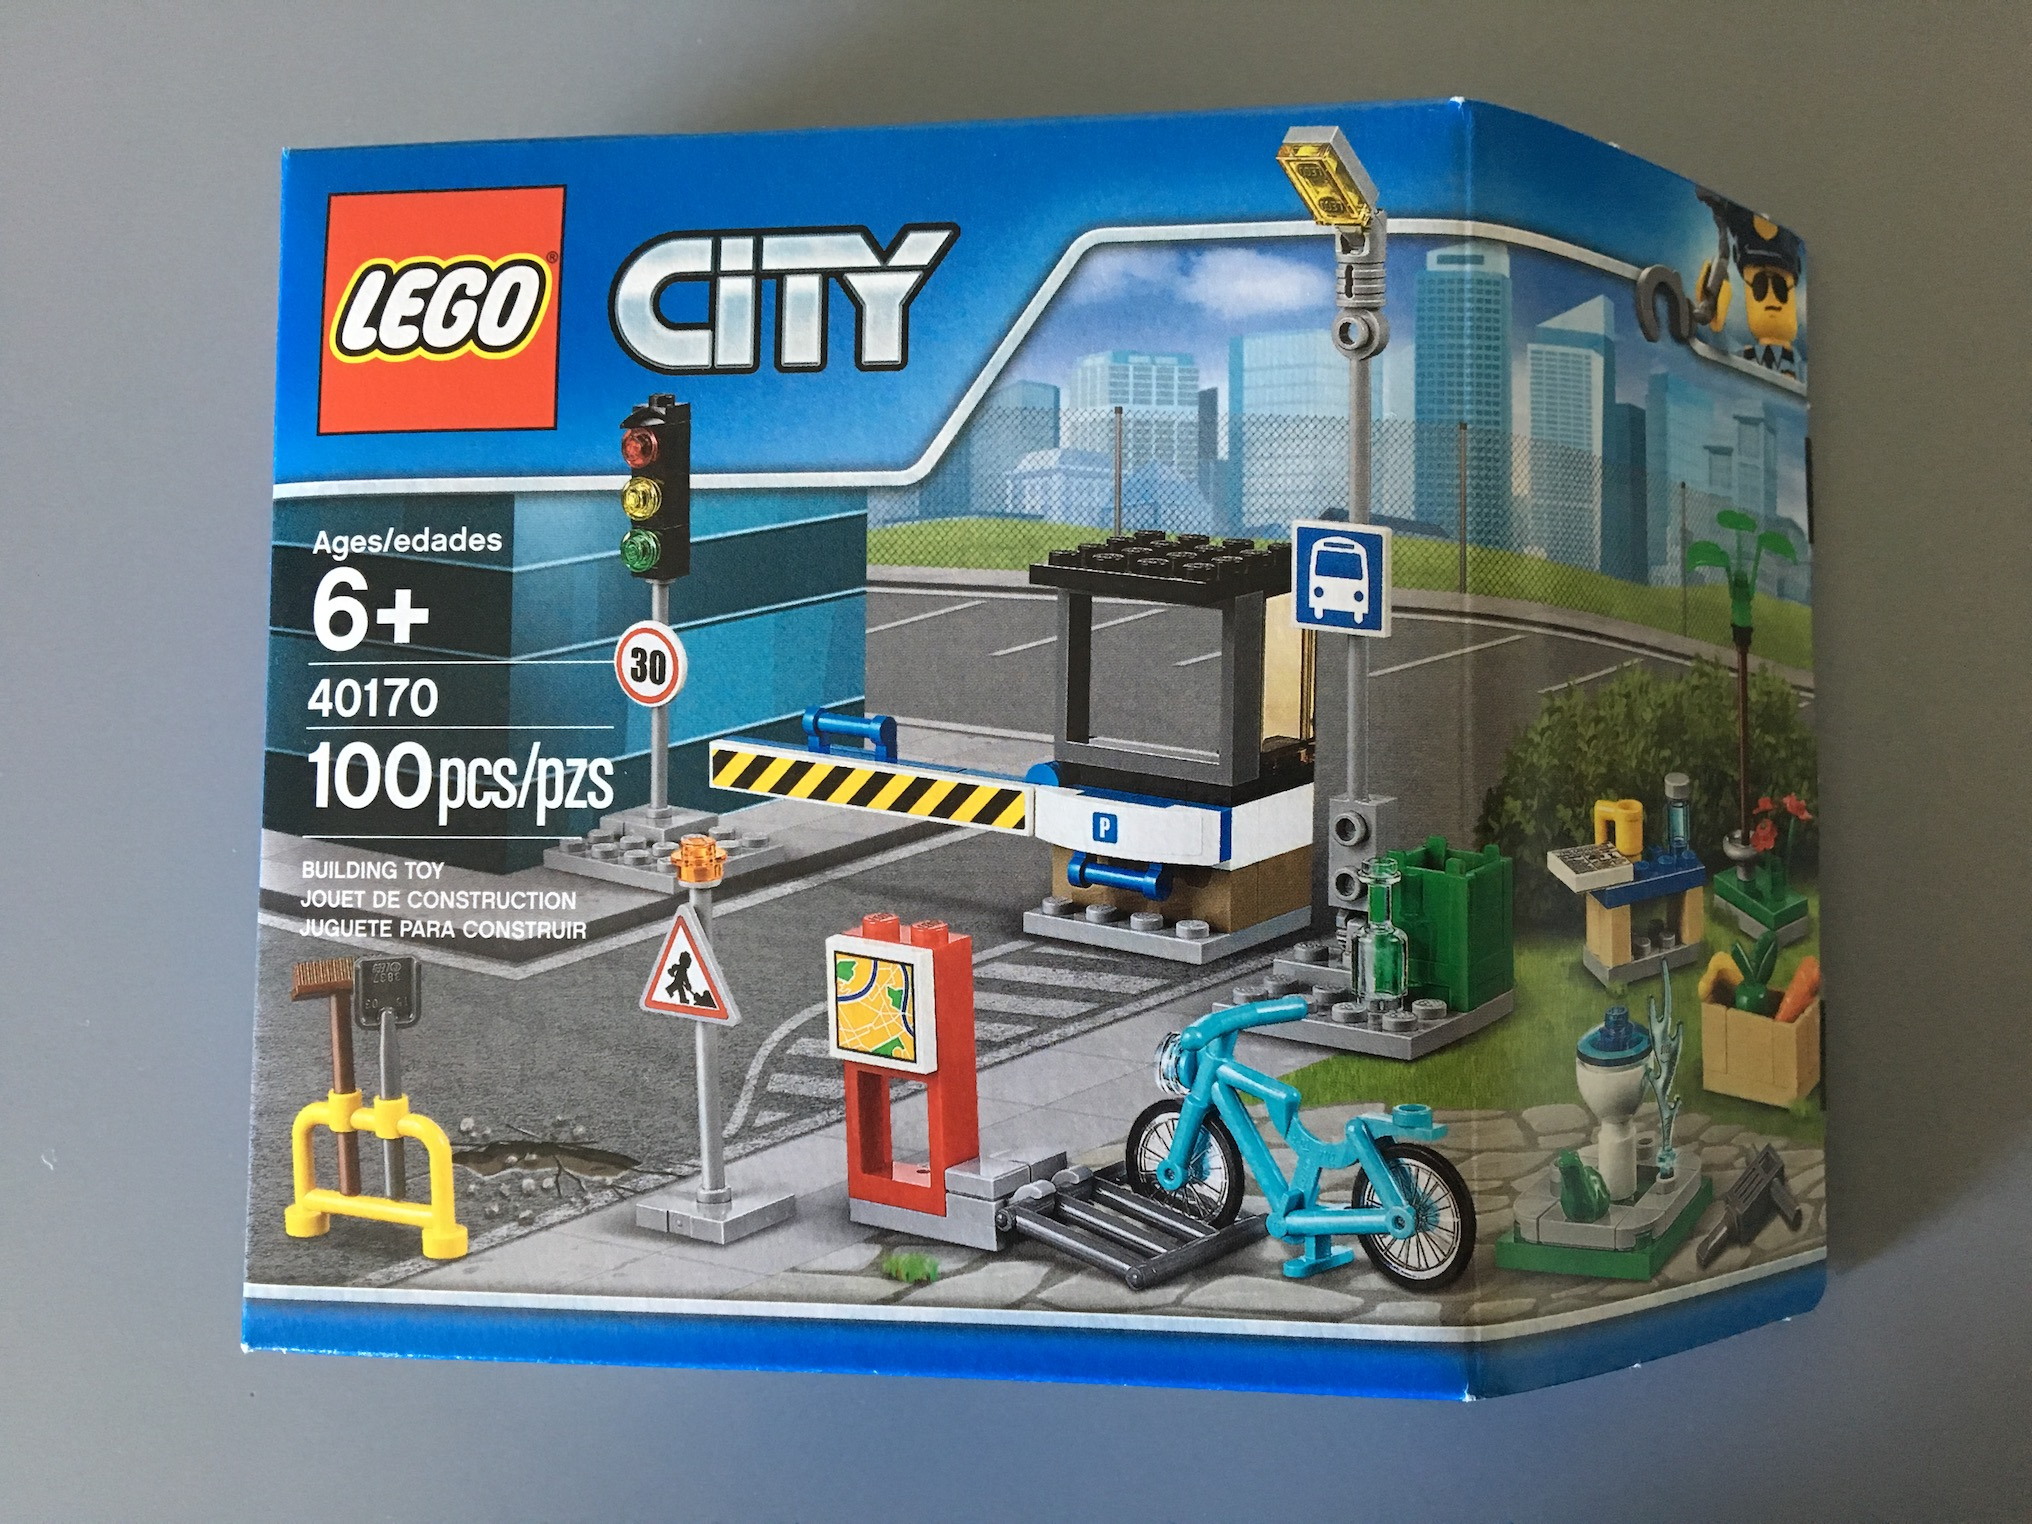 LEGO City 40170 Build My City accessory set